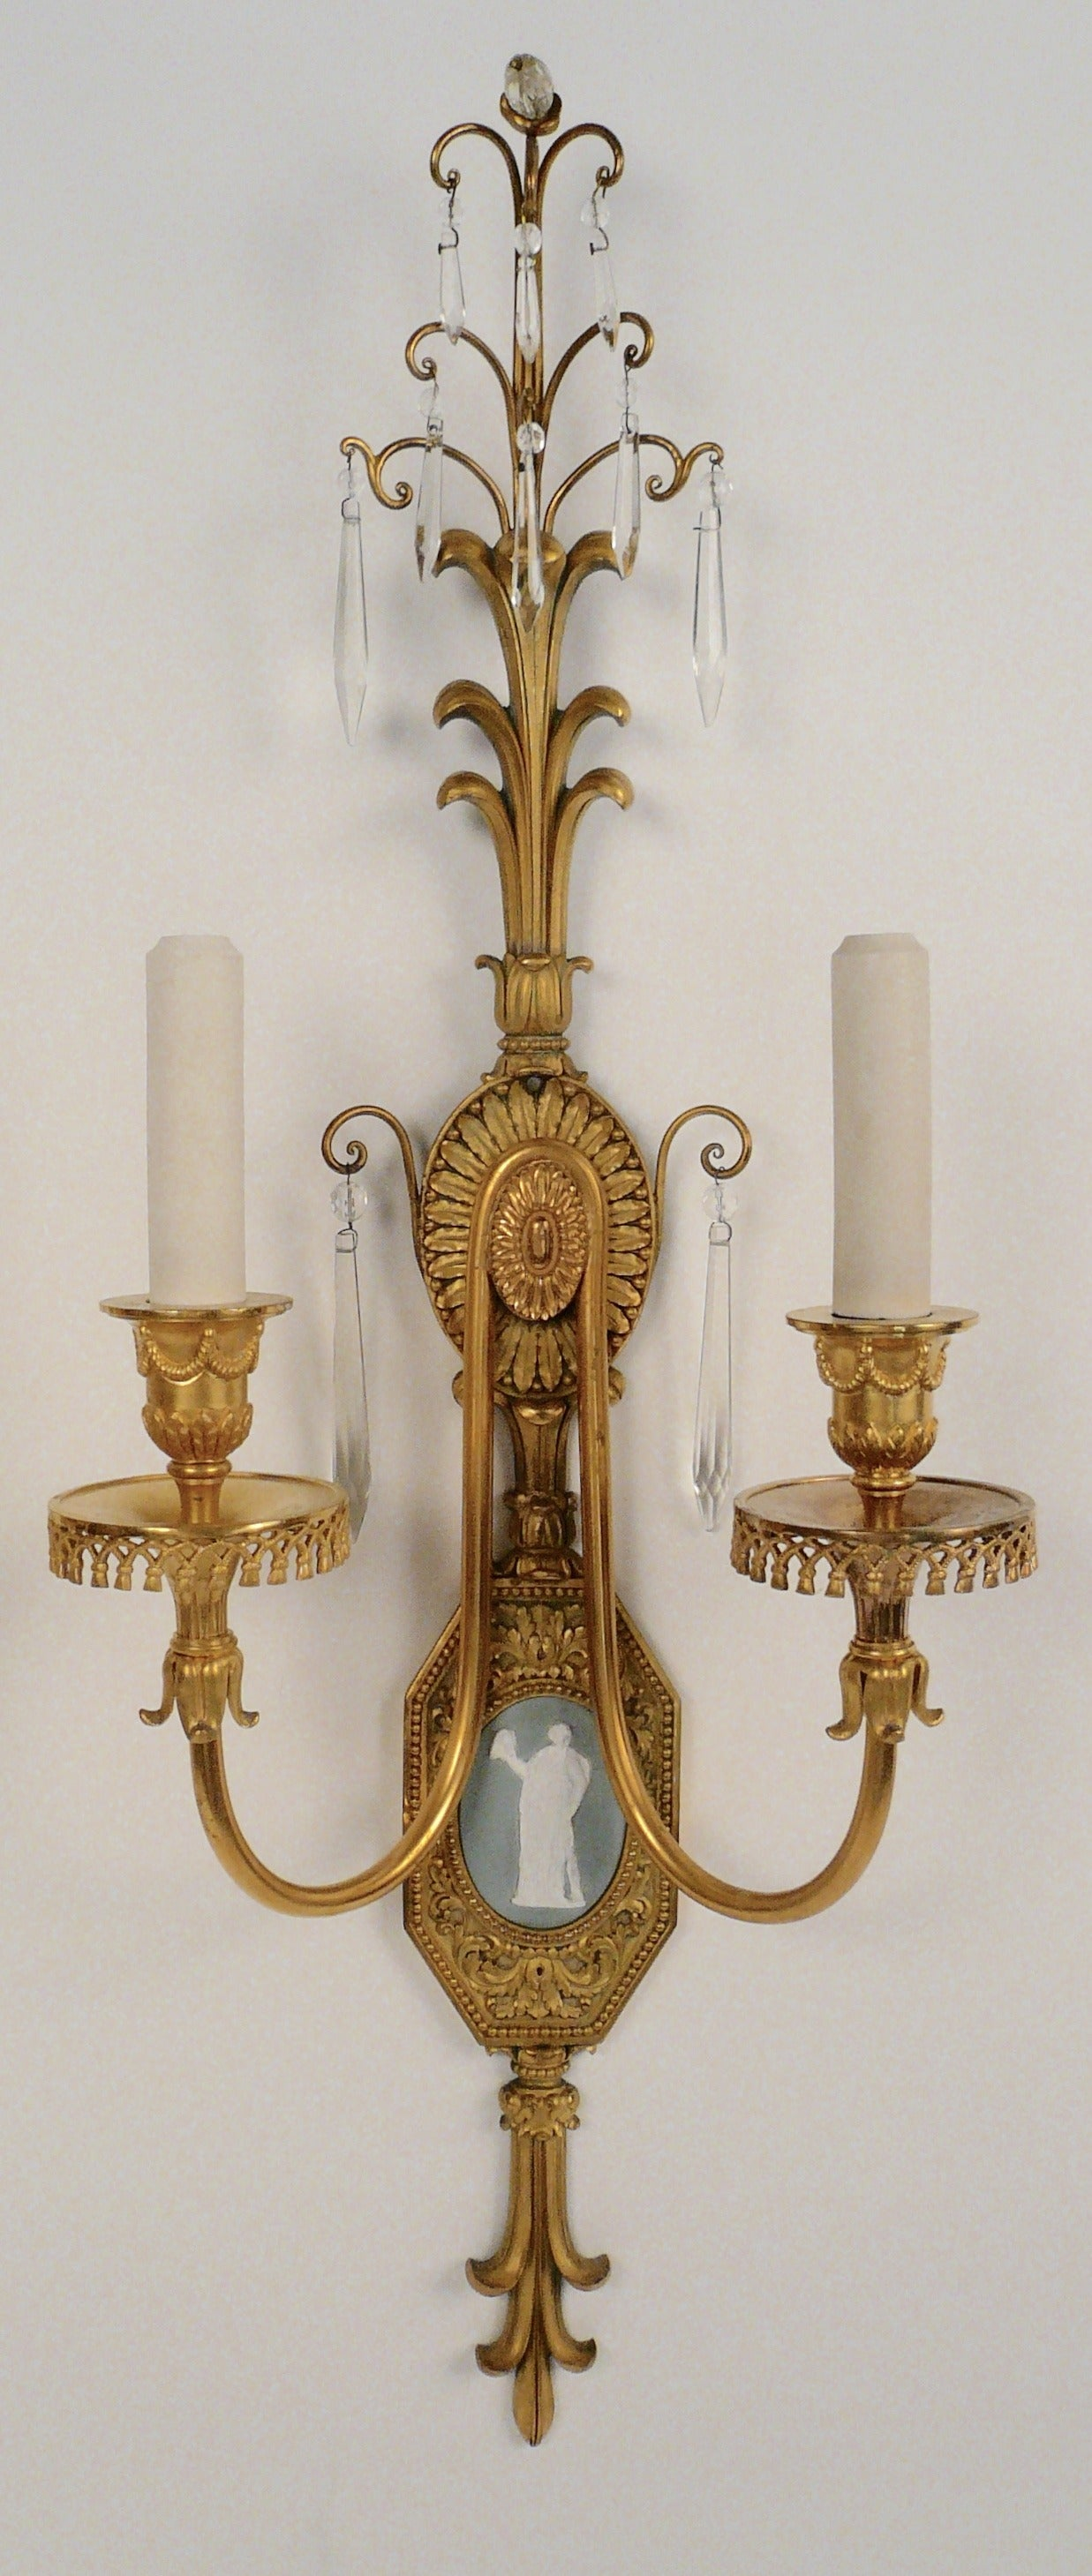 Pair of fine detail and proportion, these hand chased gilt bronze sconces are mounted with enamel on copper Wedgwood jasperware style plaques.